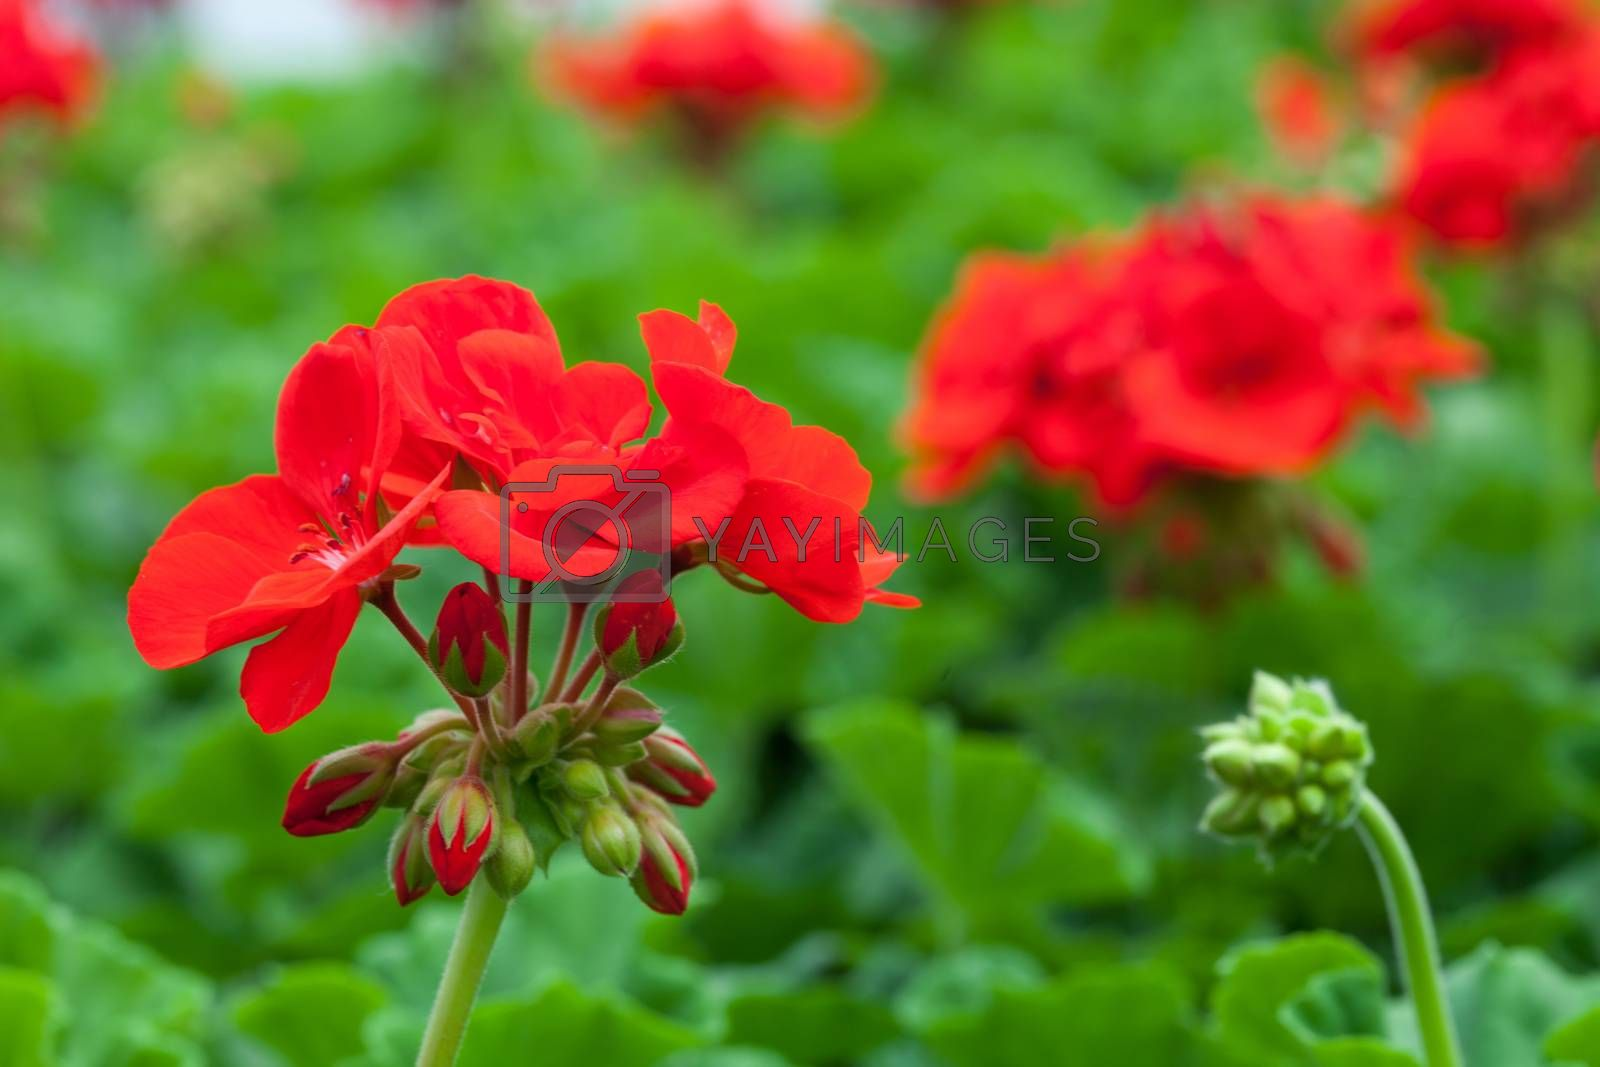 Royalty free image of Red Flowers Macro by graficallyminded